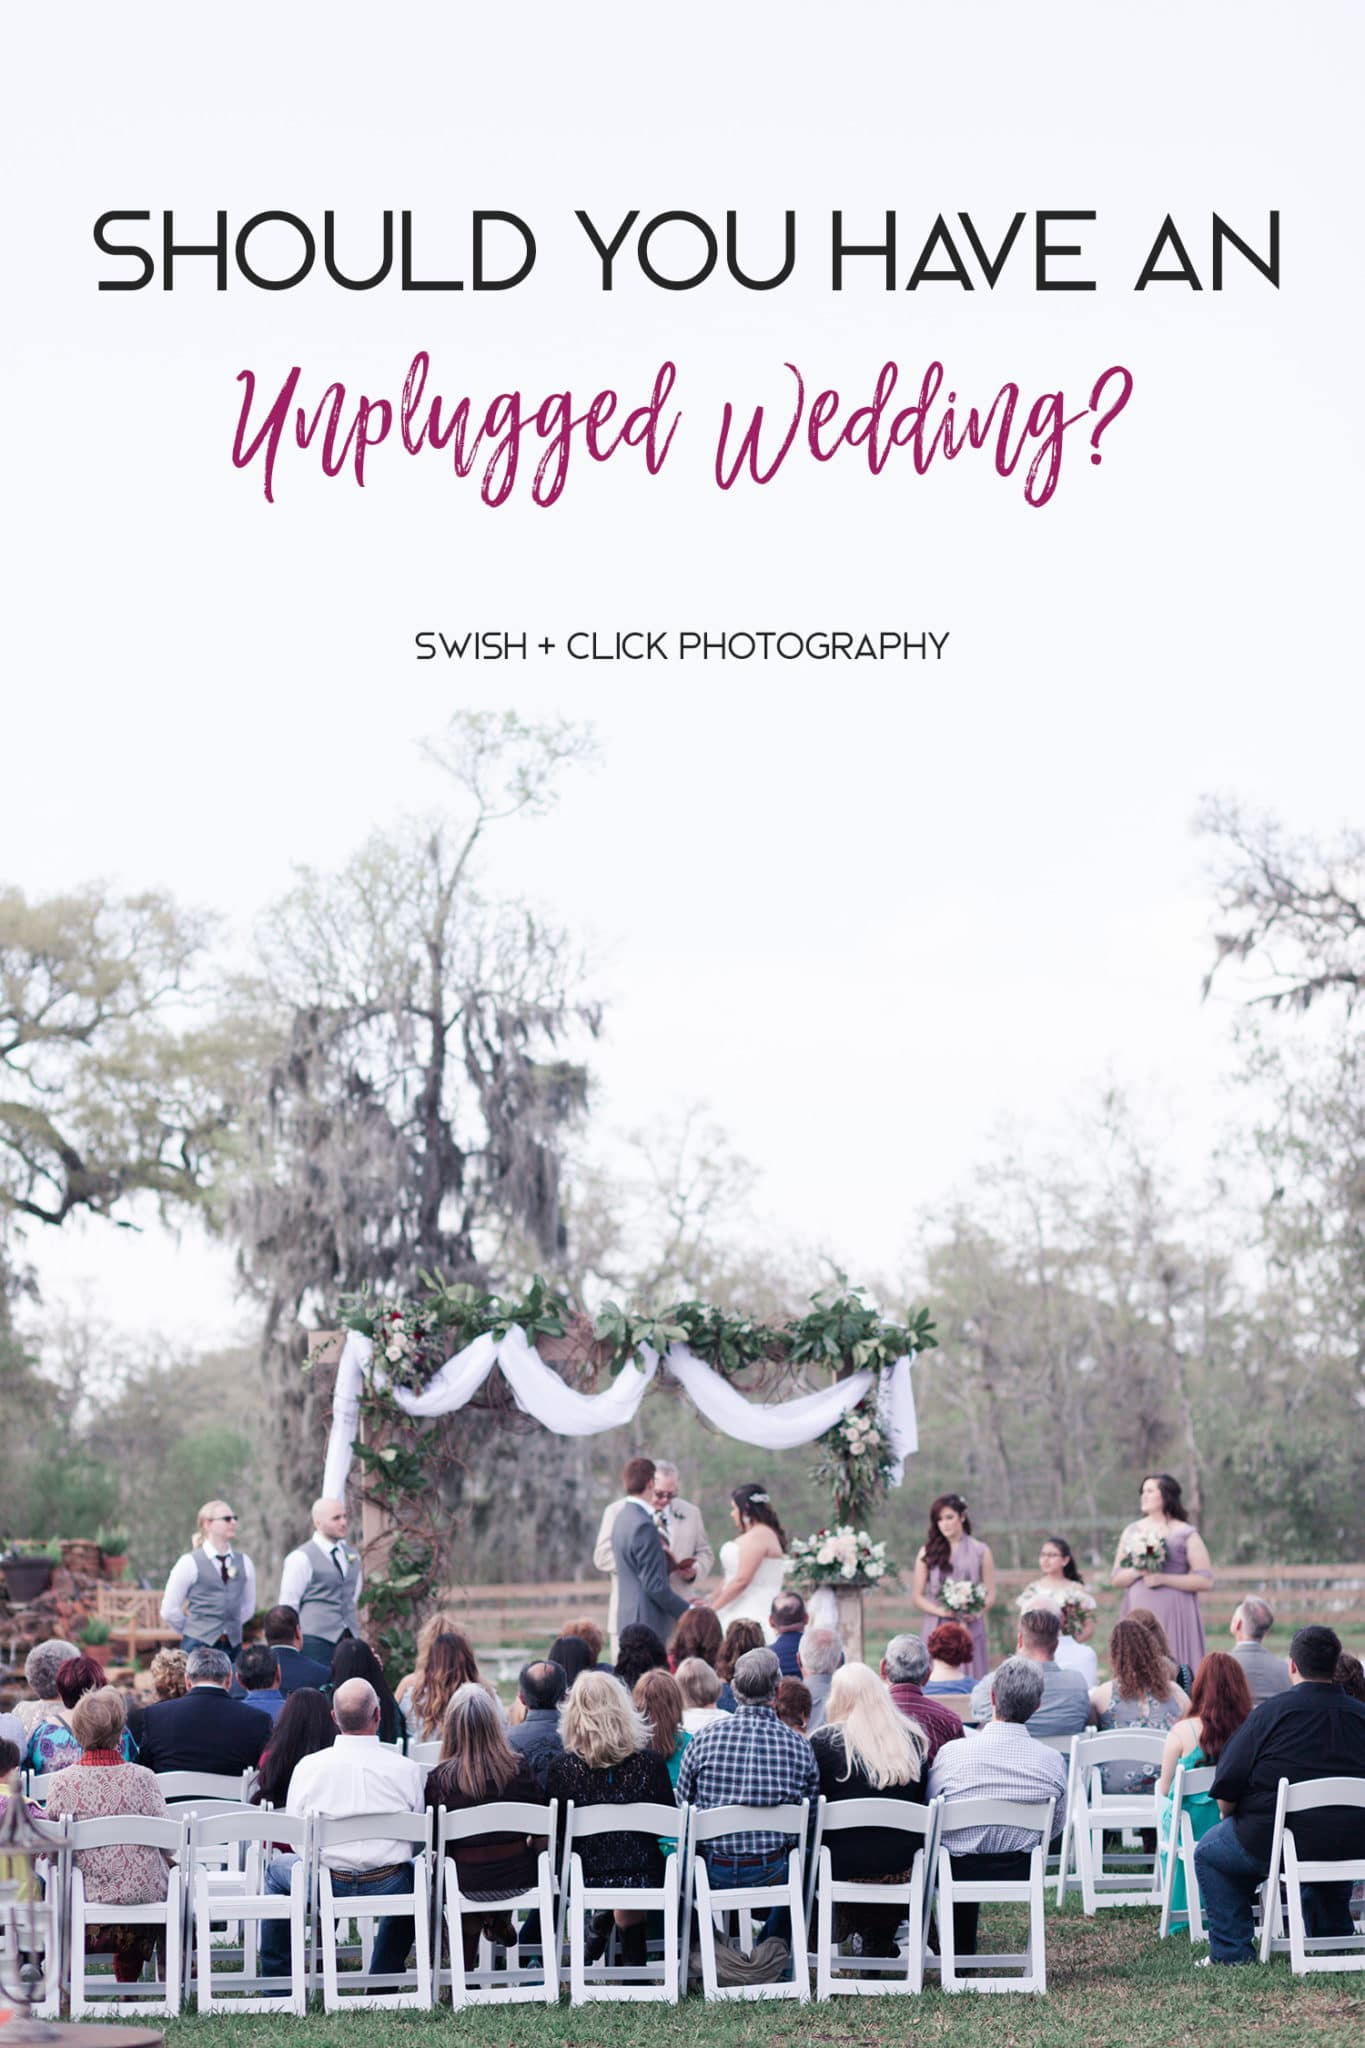 Should You Have an Unplugged Wedding? | Texas Wedding Photographer